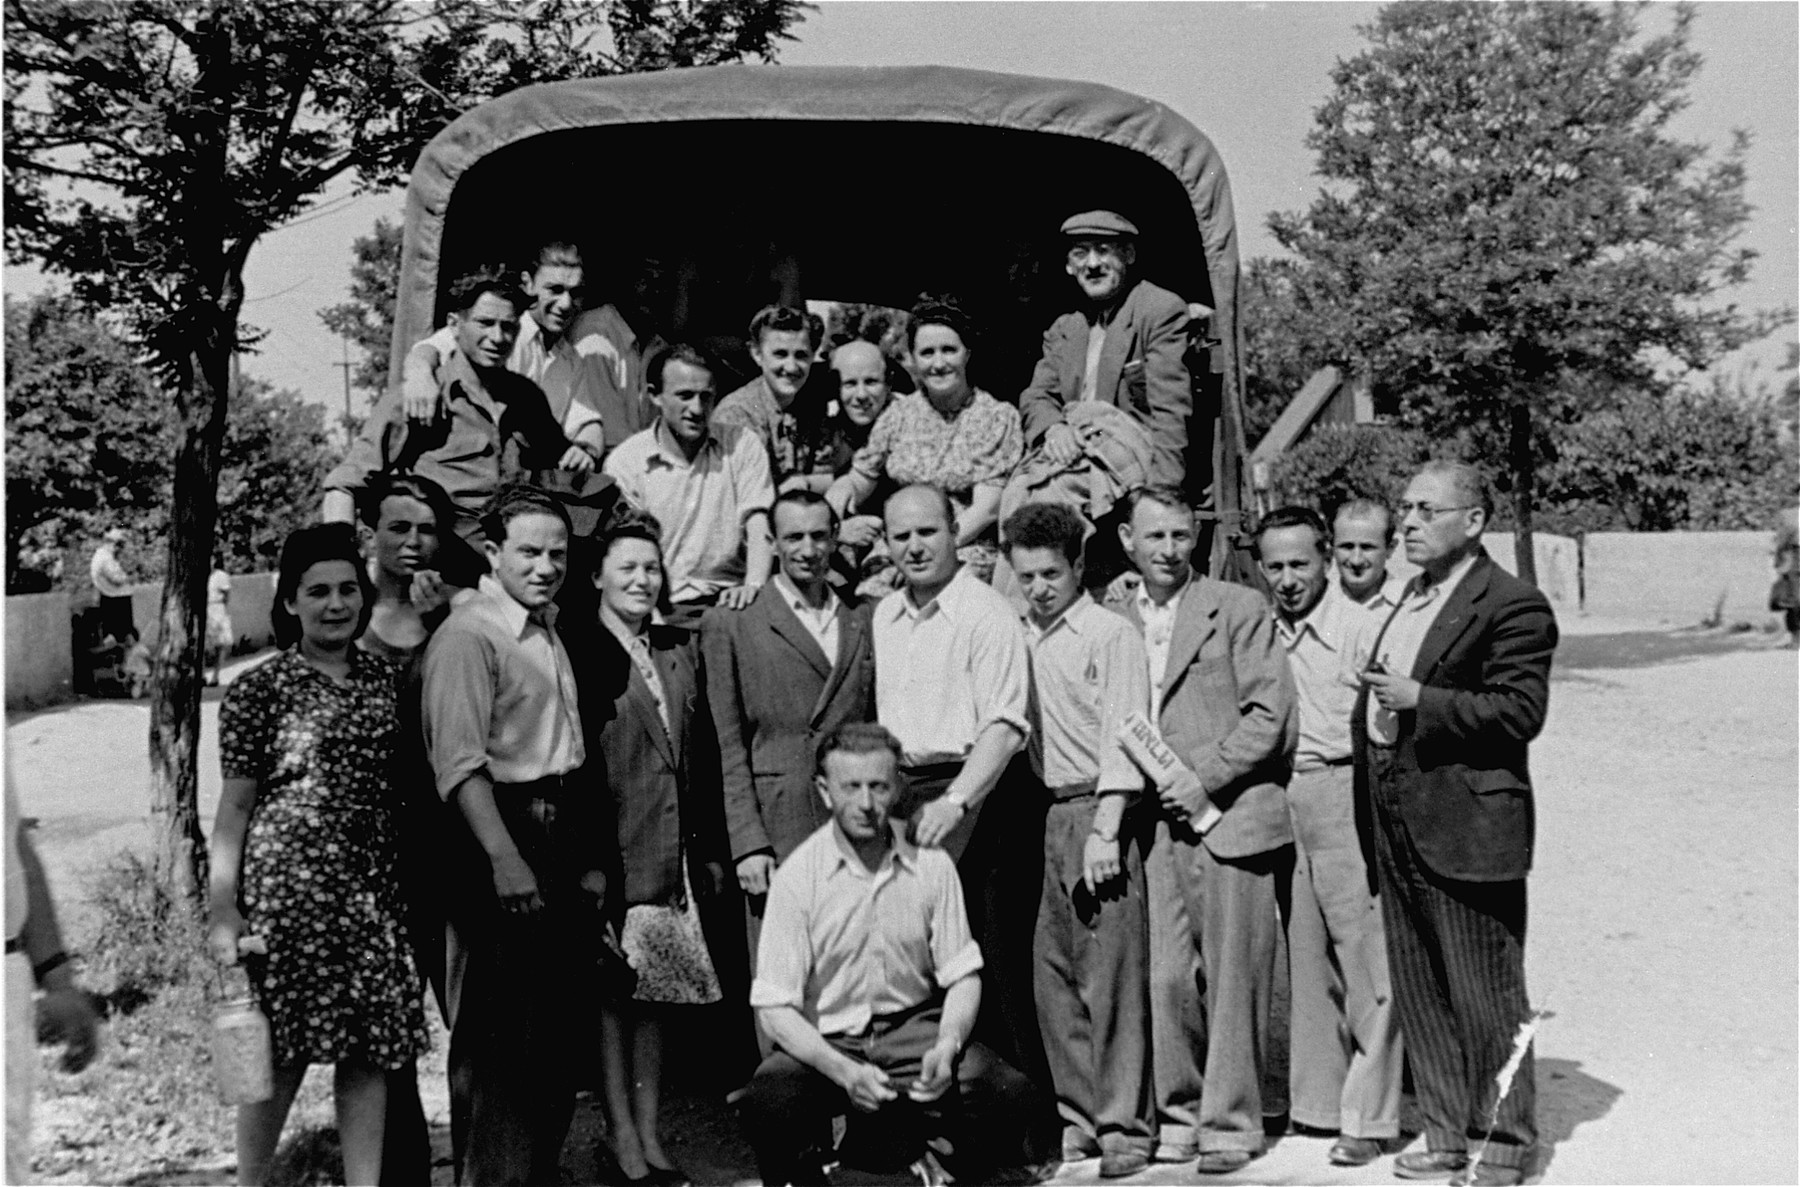 Departing DPs pose in front of a truck at a displaced persons camp in Germany.